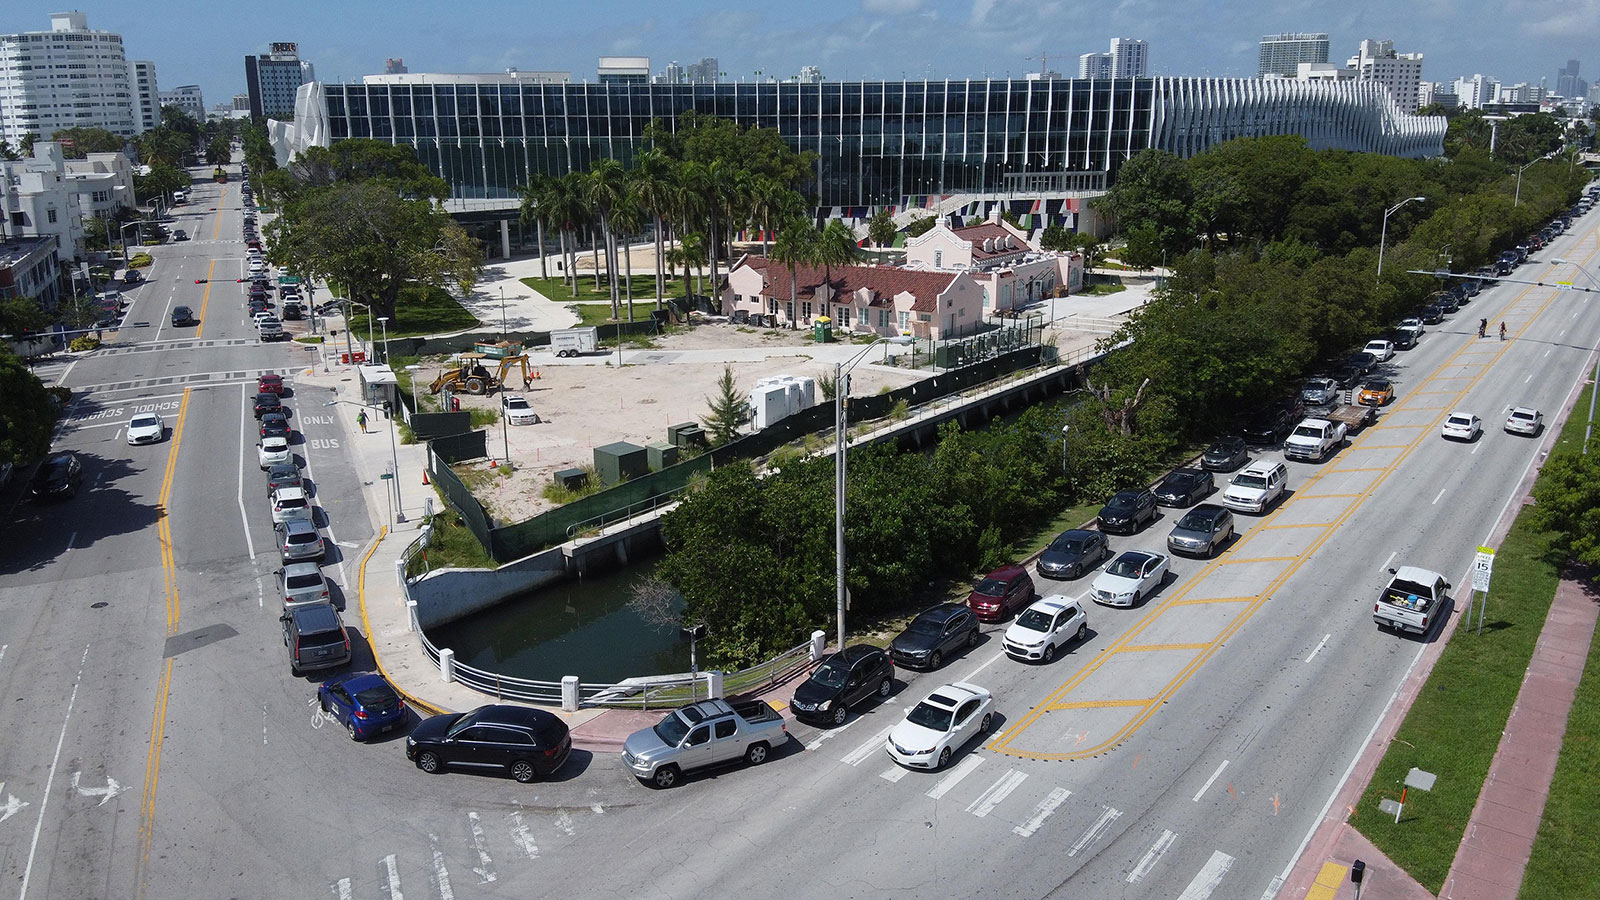 A long line of cars wait to enter a drive-through coronavirus testing site near the Miami Beach Convention Center on Thursday, June 25.